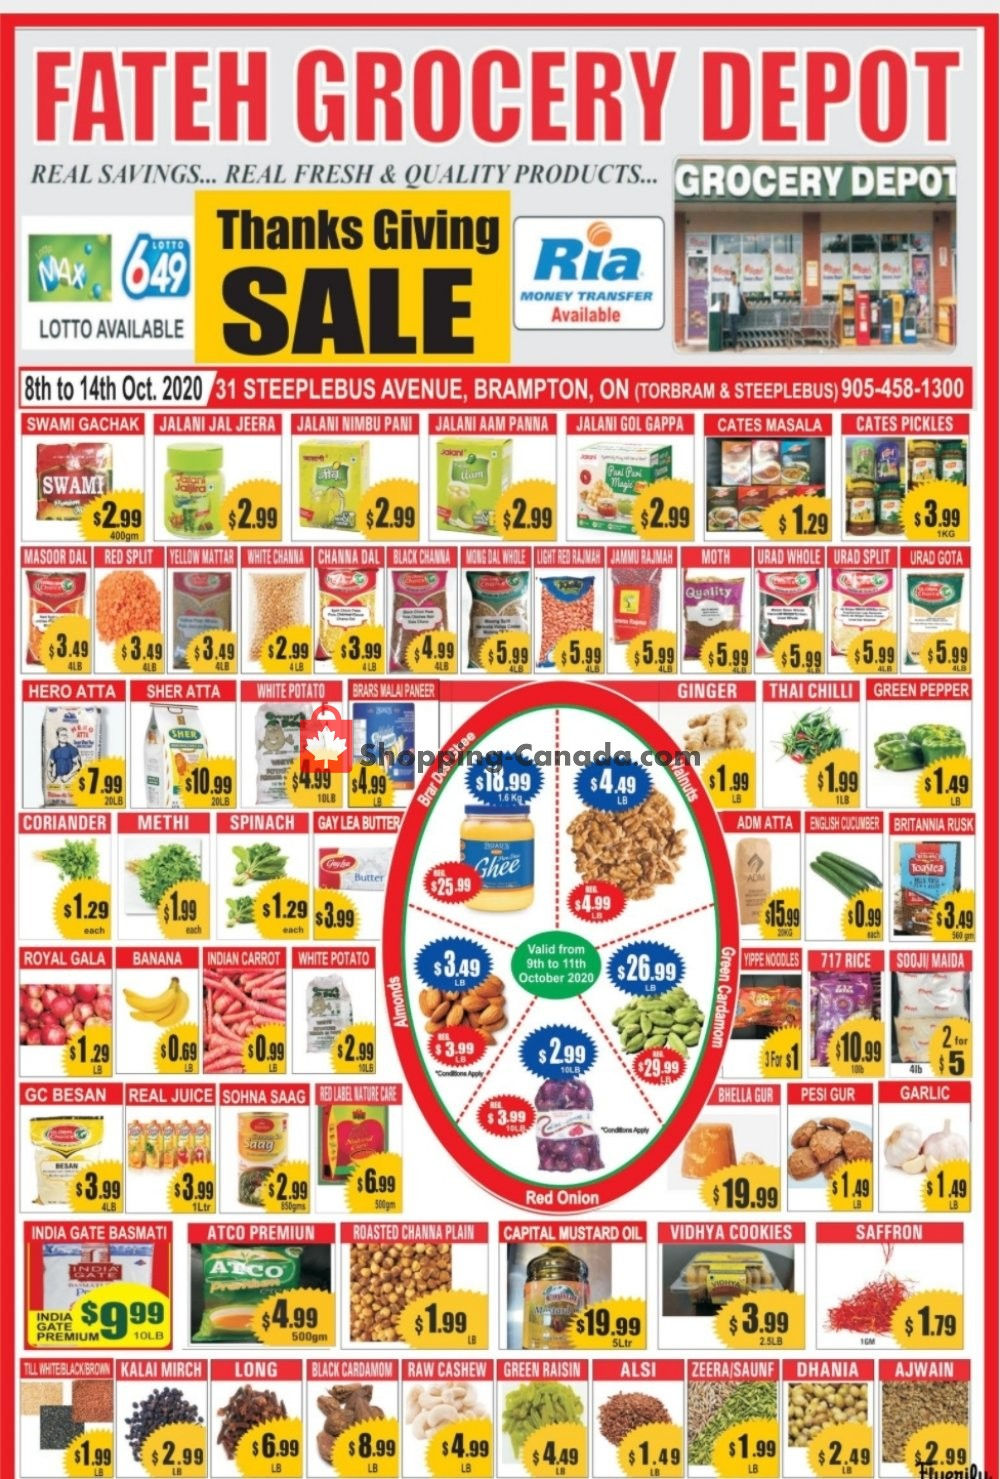 Flyer Fateh Grocery Depot Canada - from Thursday October 8, 2020 to Wednesday October 14, 2020